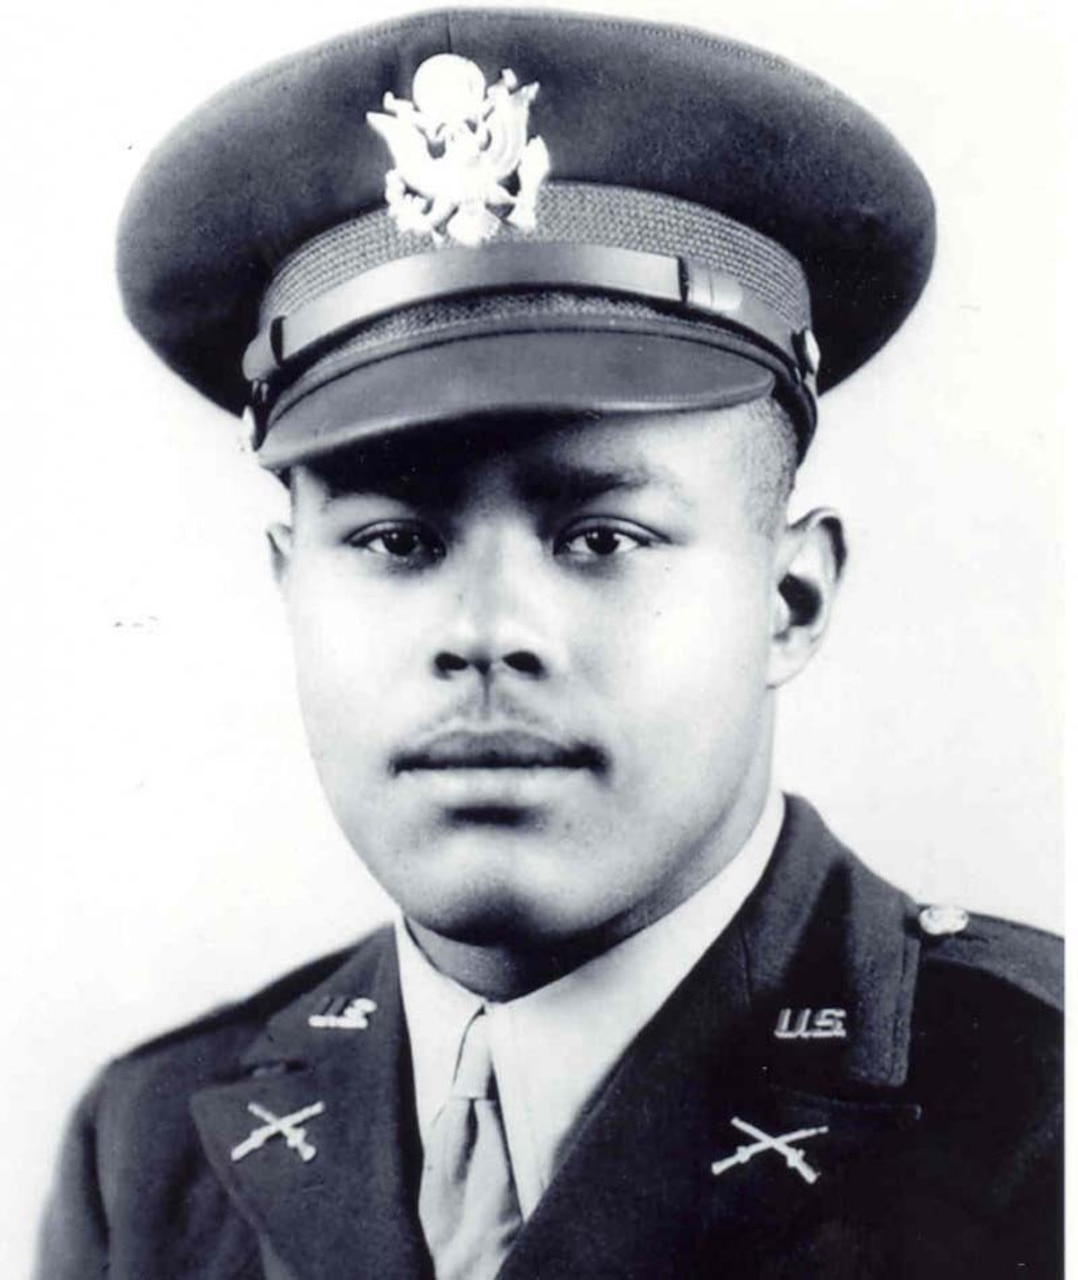 A man in an officer's uniform looks at the camera.